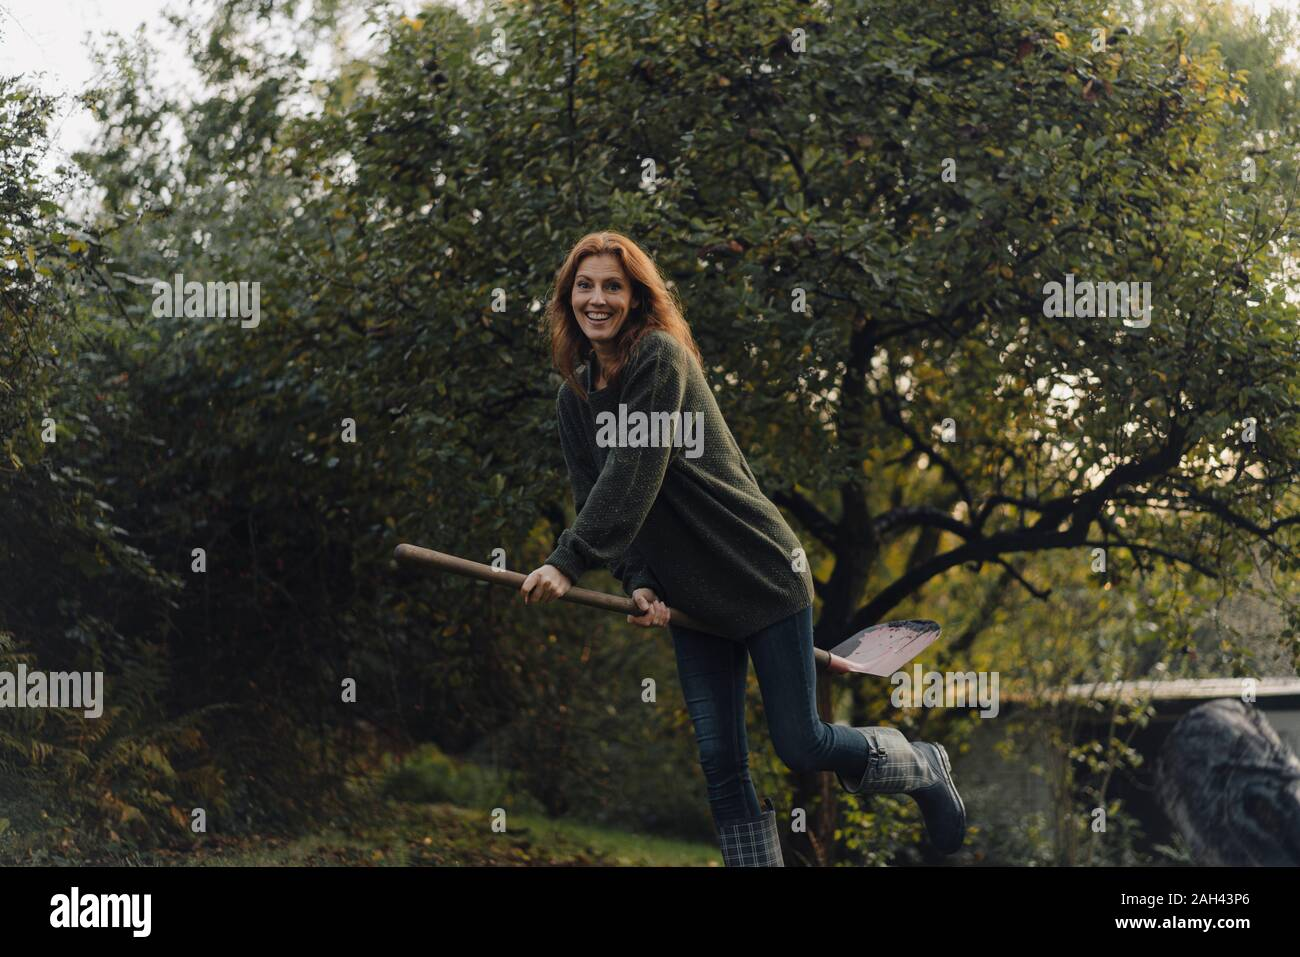 Woman working in her garden, pretending to fly on a shovel Stock Photo